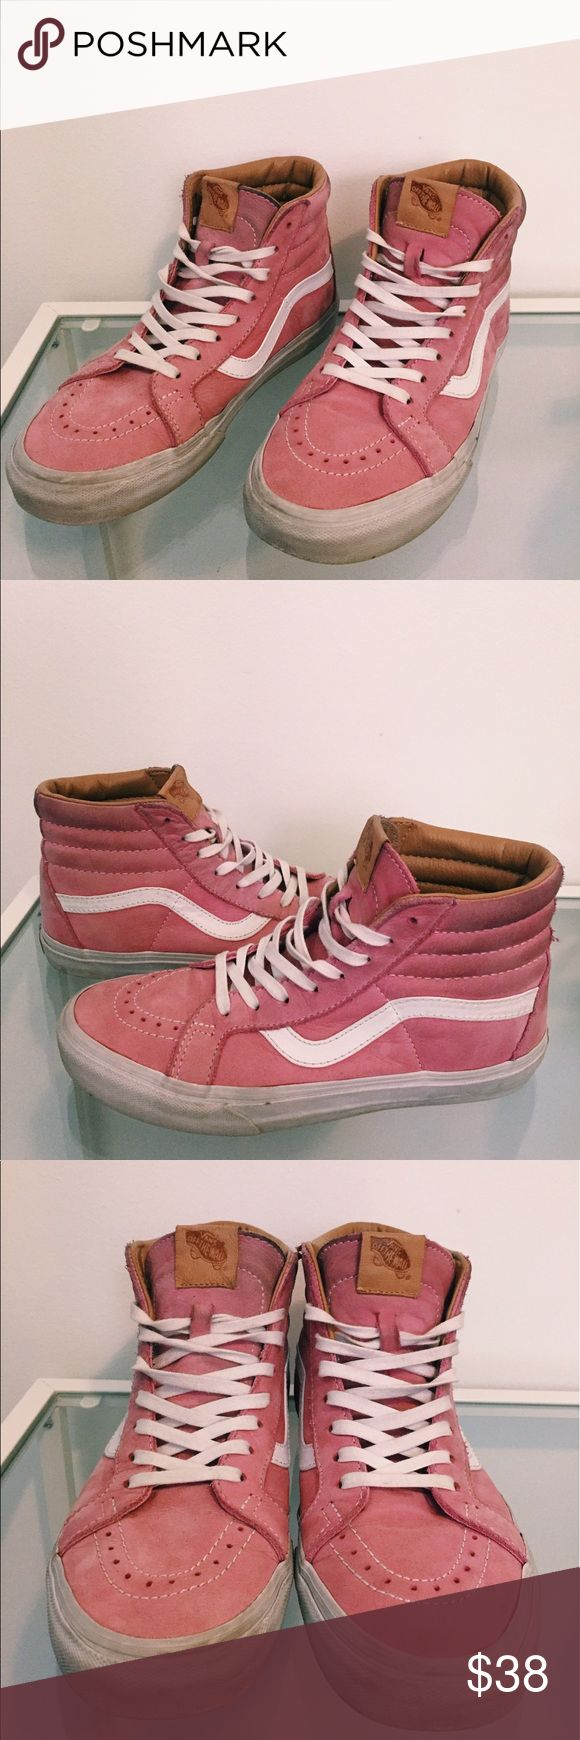 Pink Suede Sk8-Hi Vans Pink suede Vans Sk8-His with white bottoms and tan leather lining along interior near ankles. Lightly worn with discoloration (darkening) along the tops of both shoes. Make me an offer! Vans Shoes Sneakers